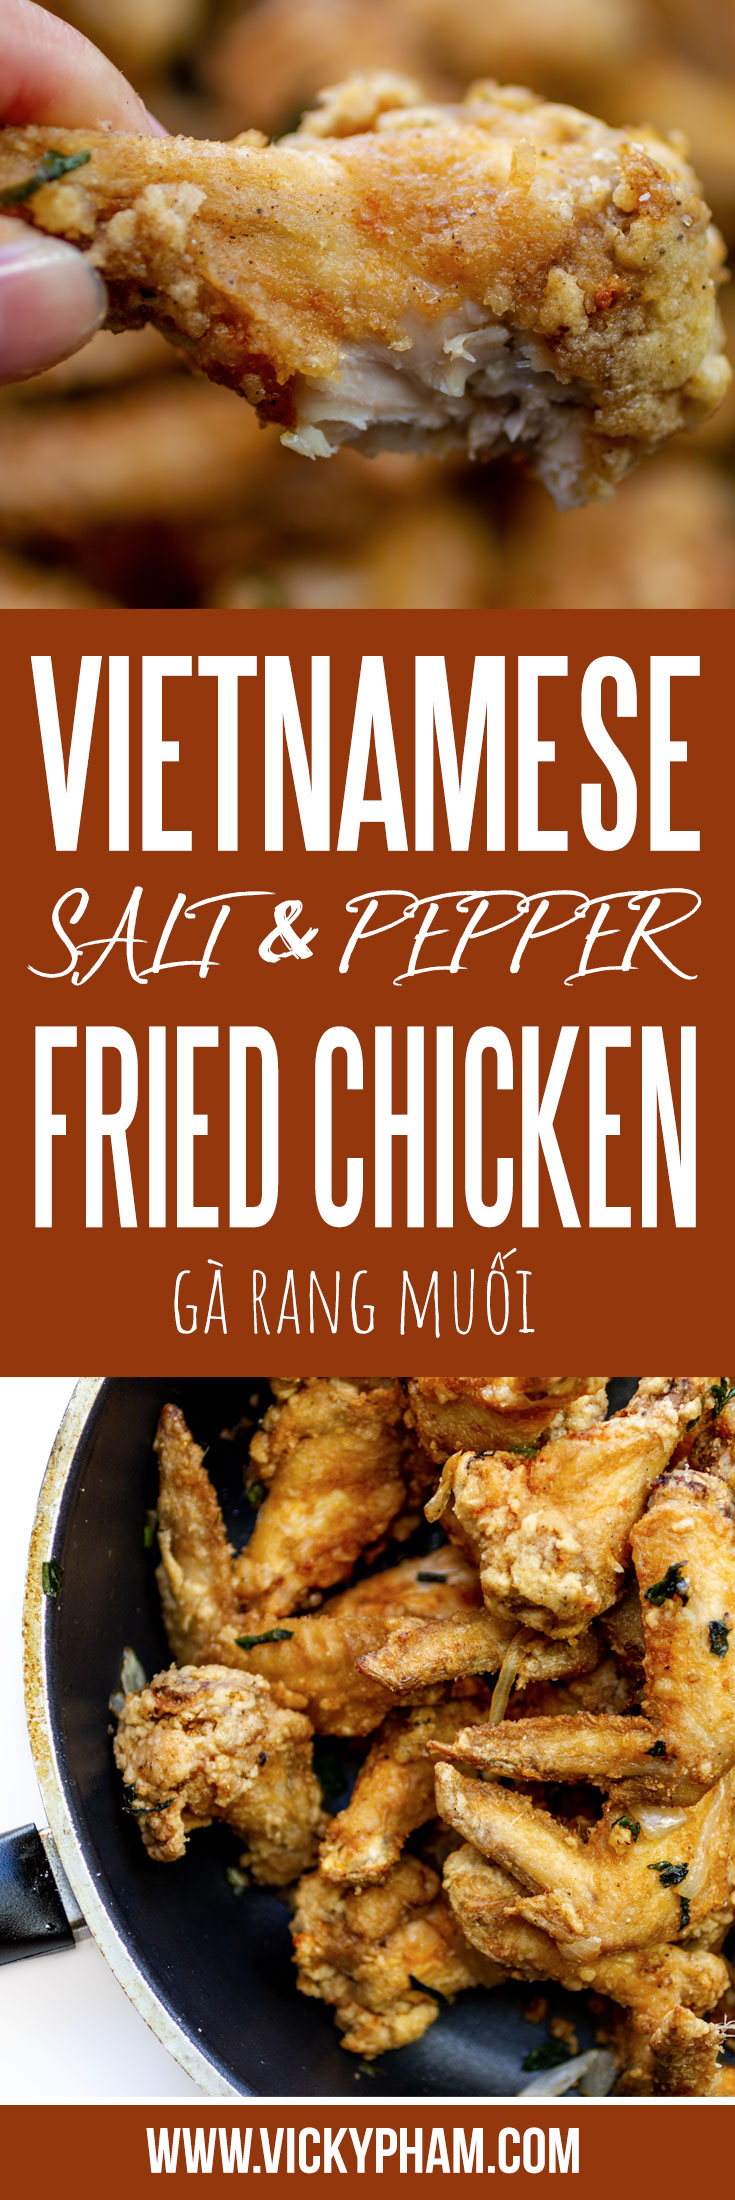 salt-pepper-chicken-ga-rang-muoi.jpg